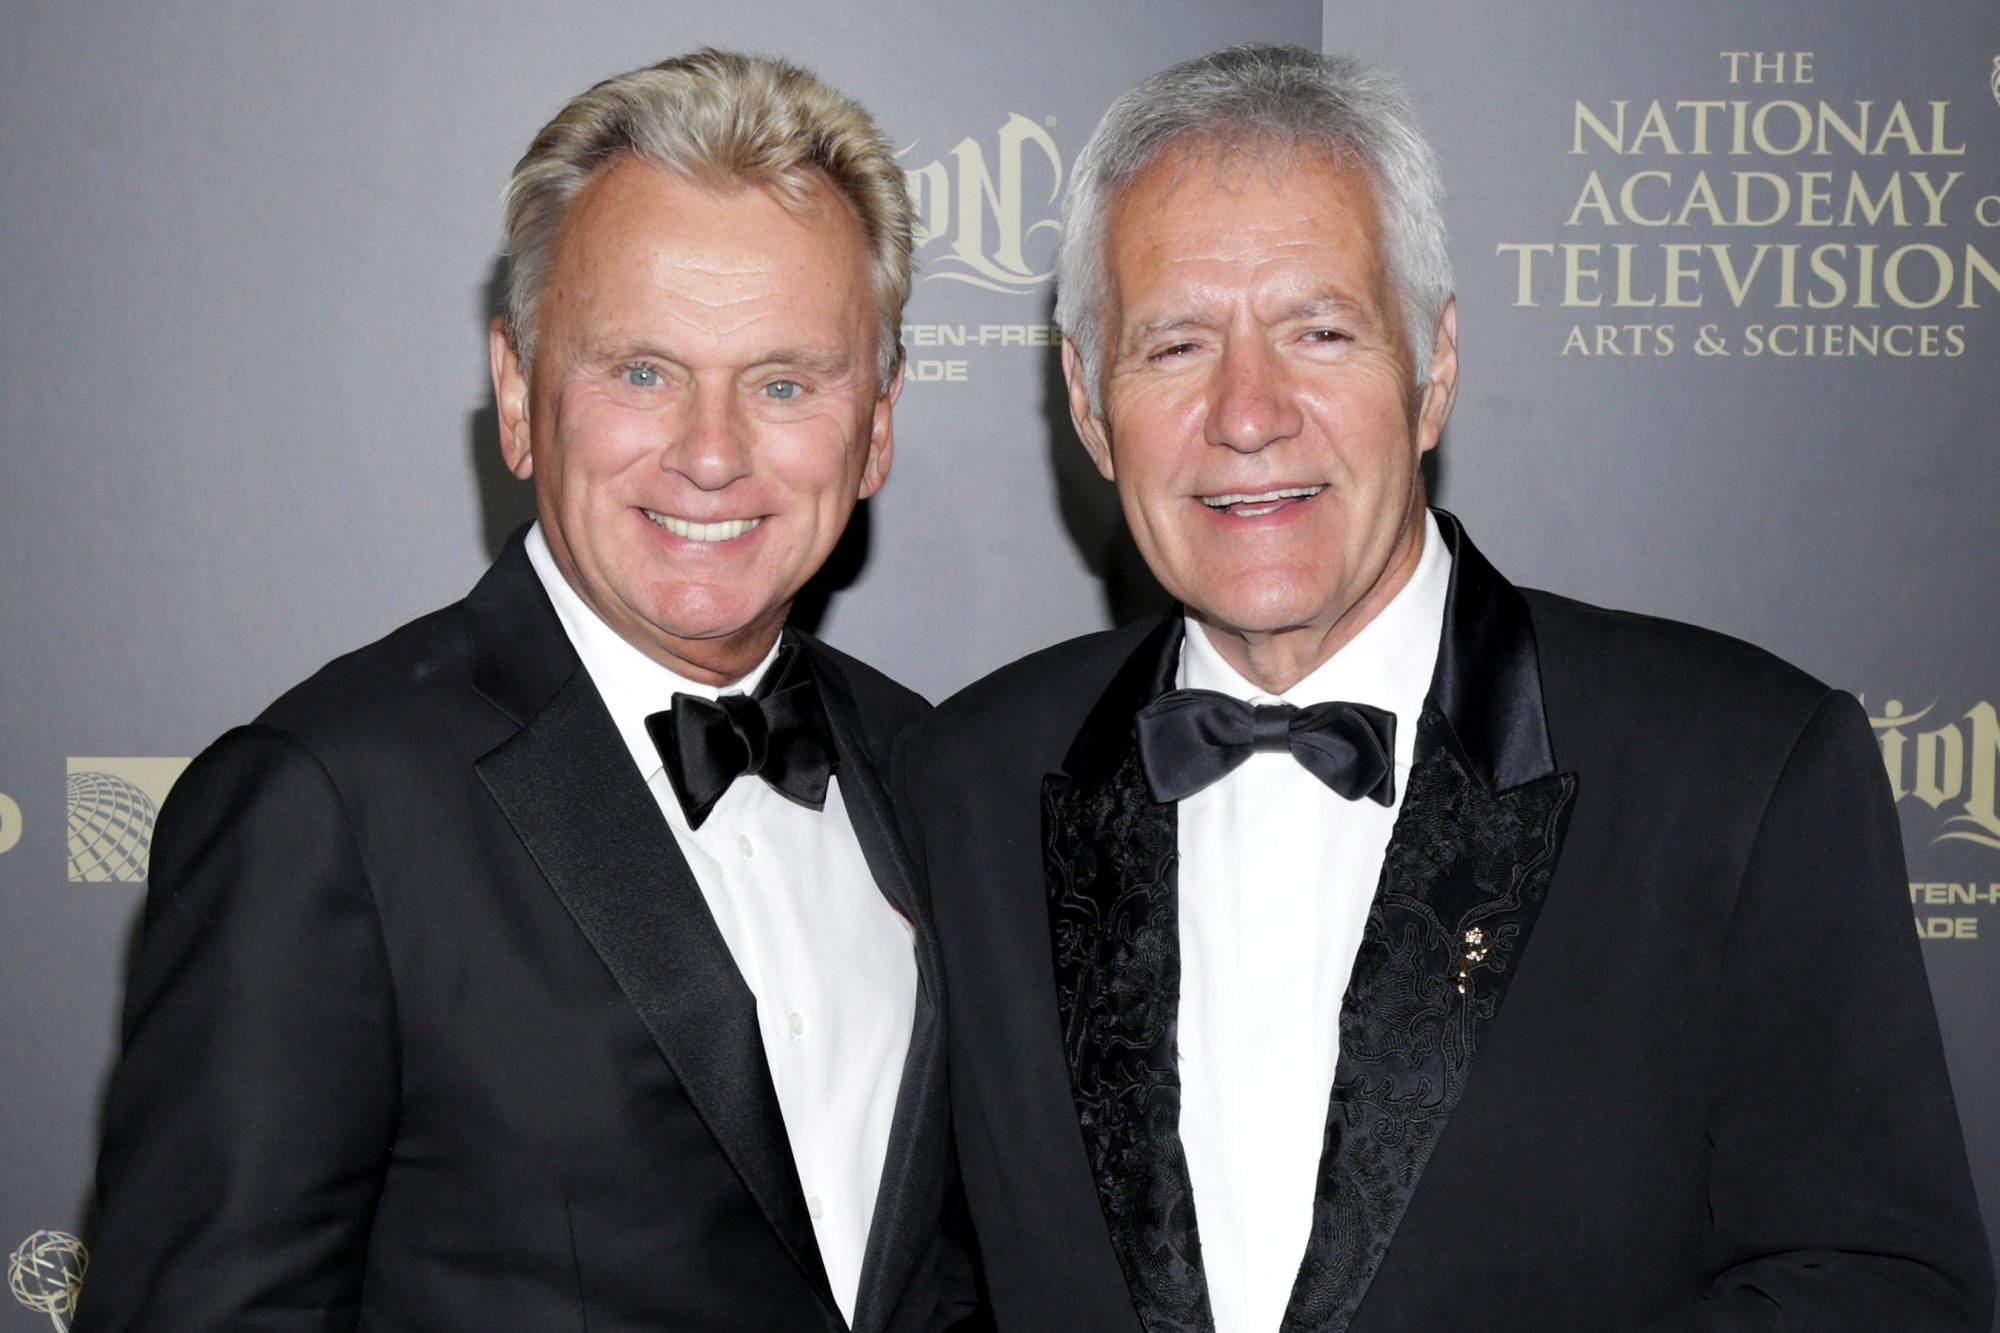 Pat Sajak and Alex Trebek - 44th Annual Daytime Creative Arts Emmy Awards - Press Room